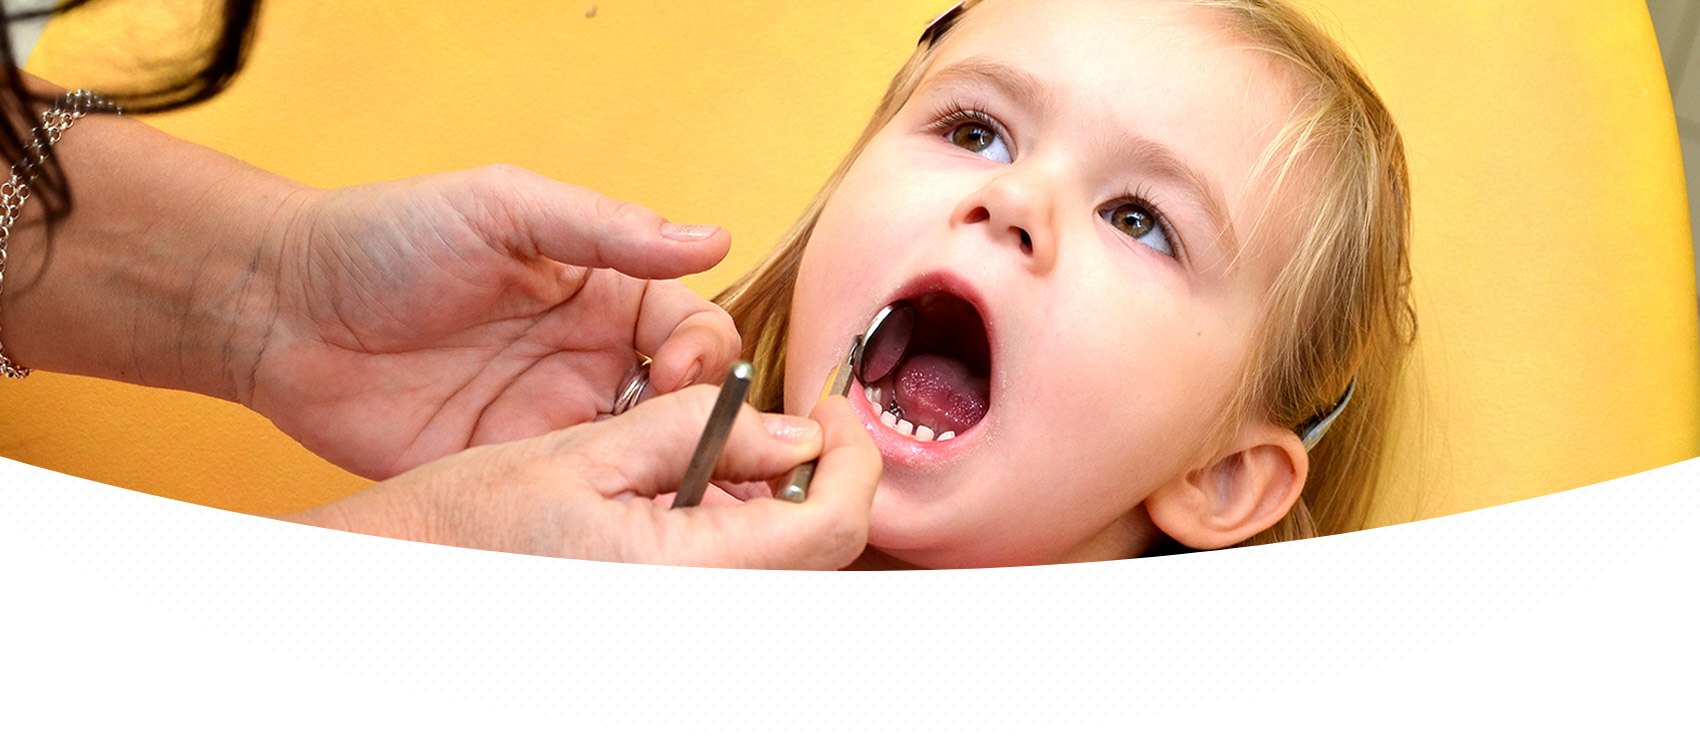 Bringing Your Child into The Dentist Just Got Easier!